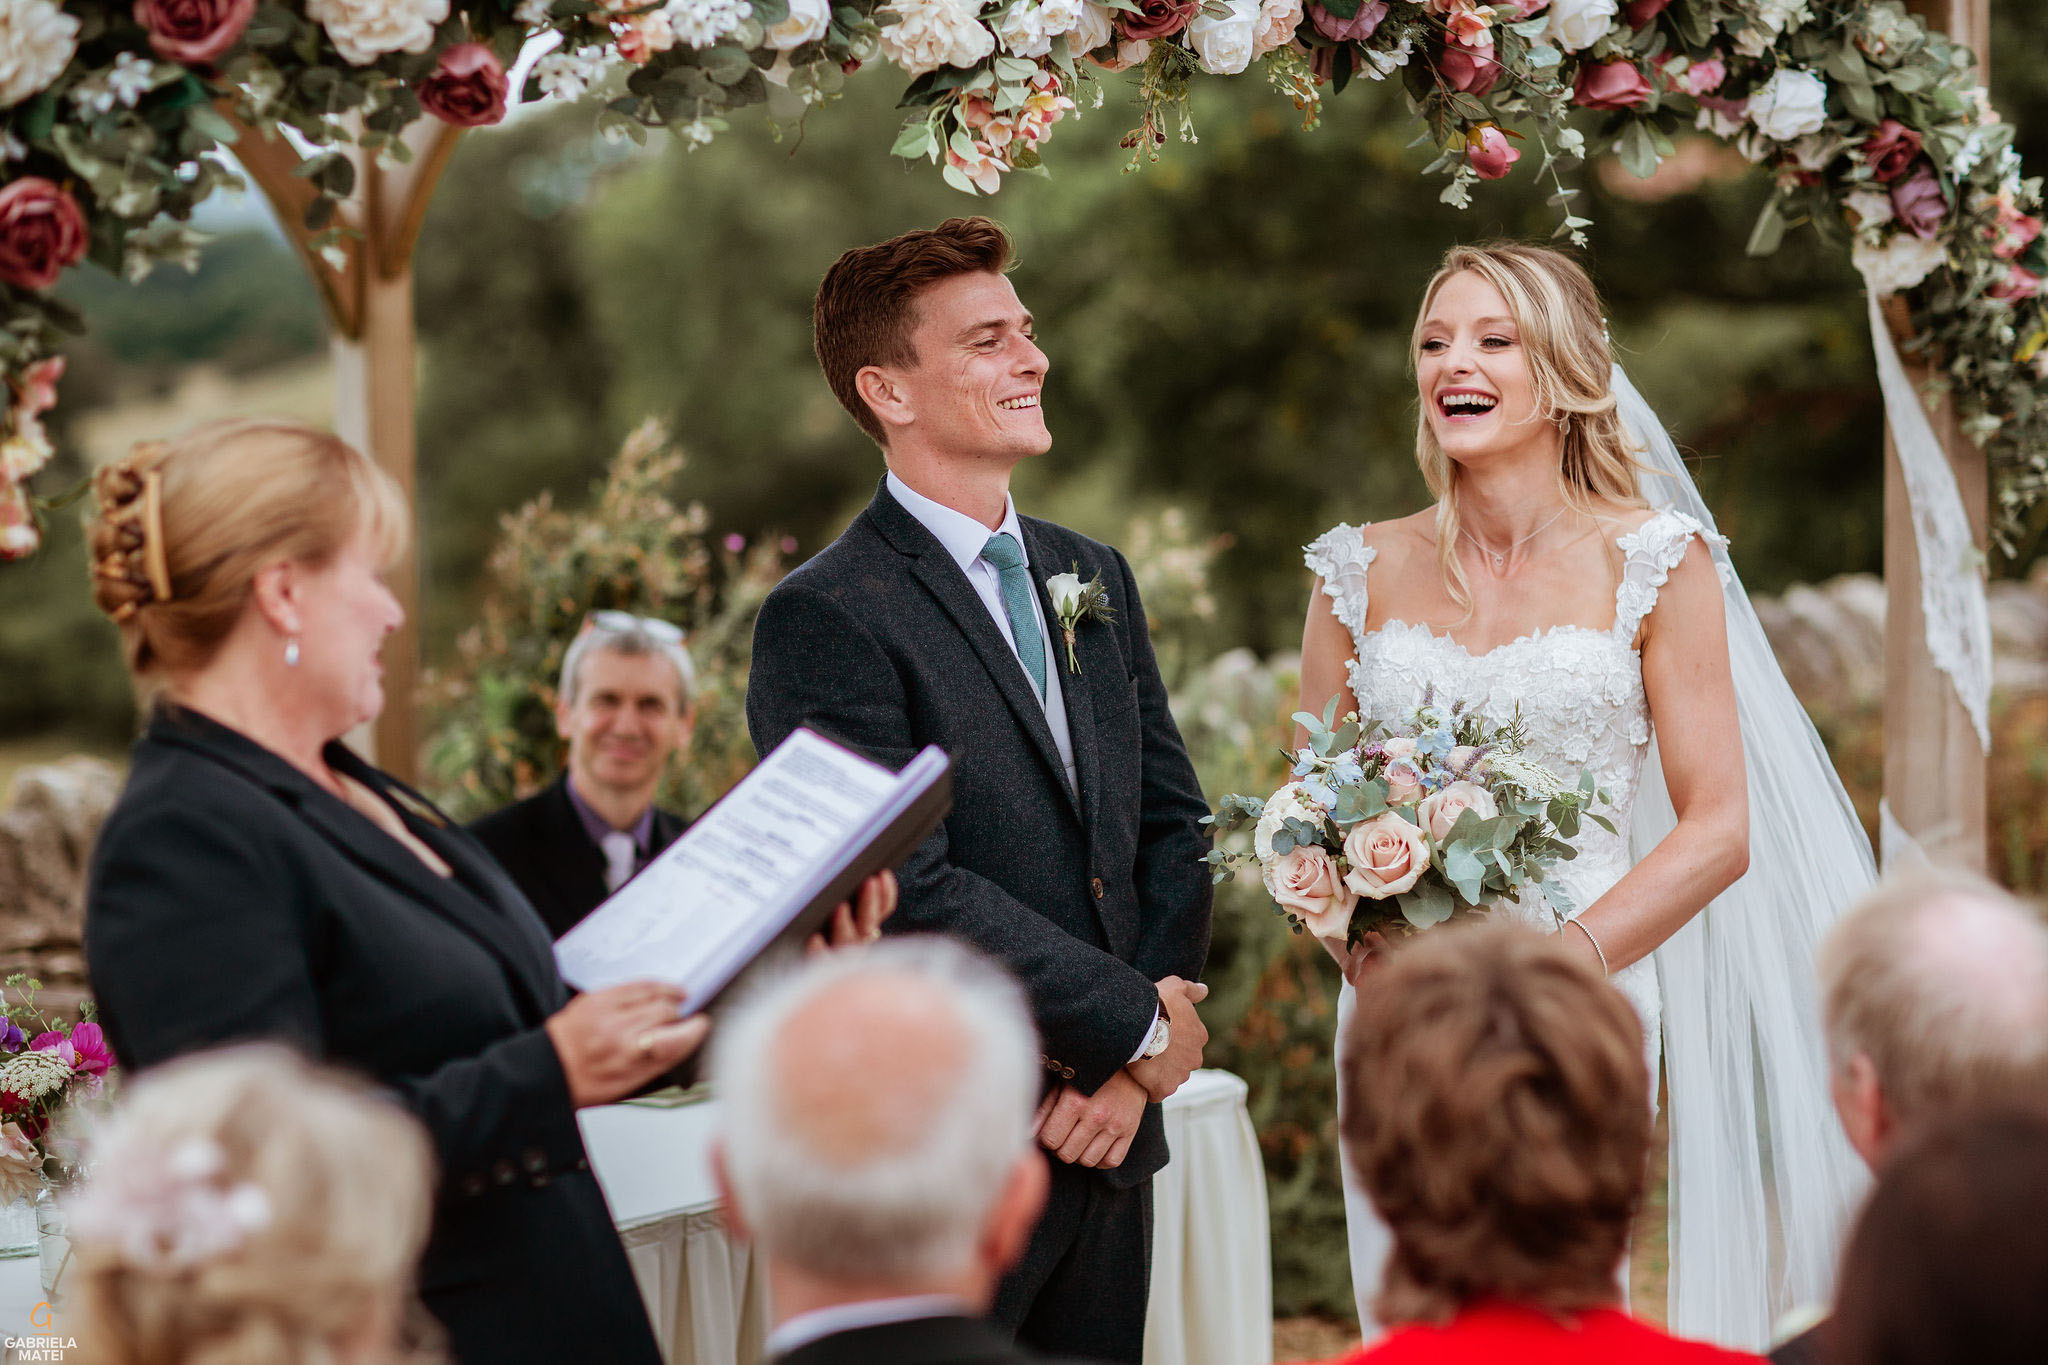 Bride and groom laughing during outdoor civil wedding